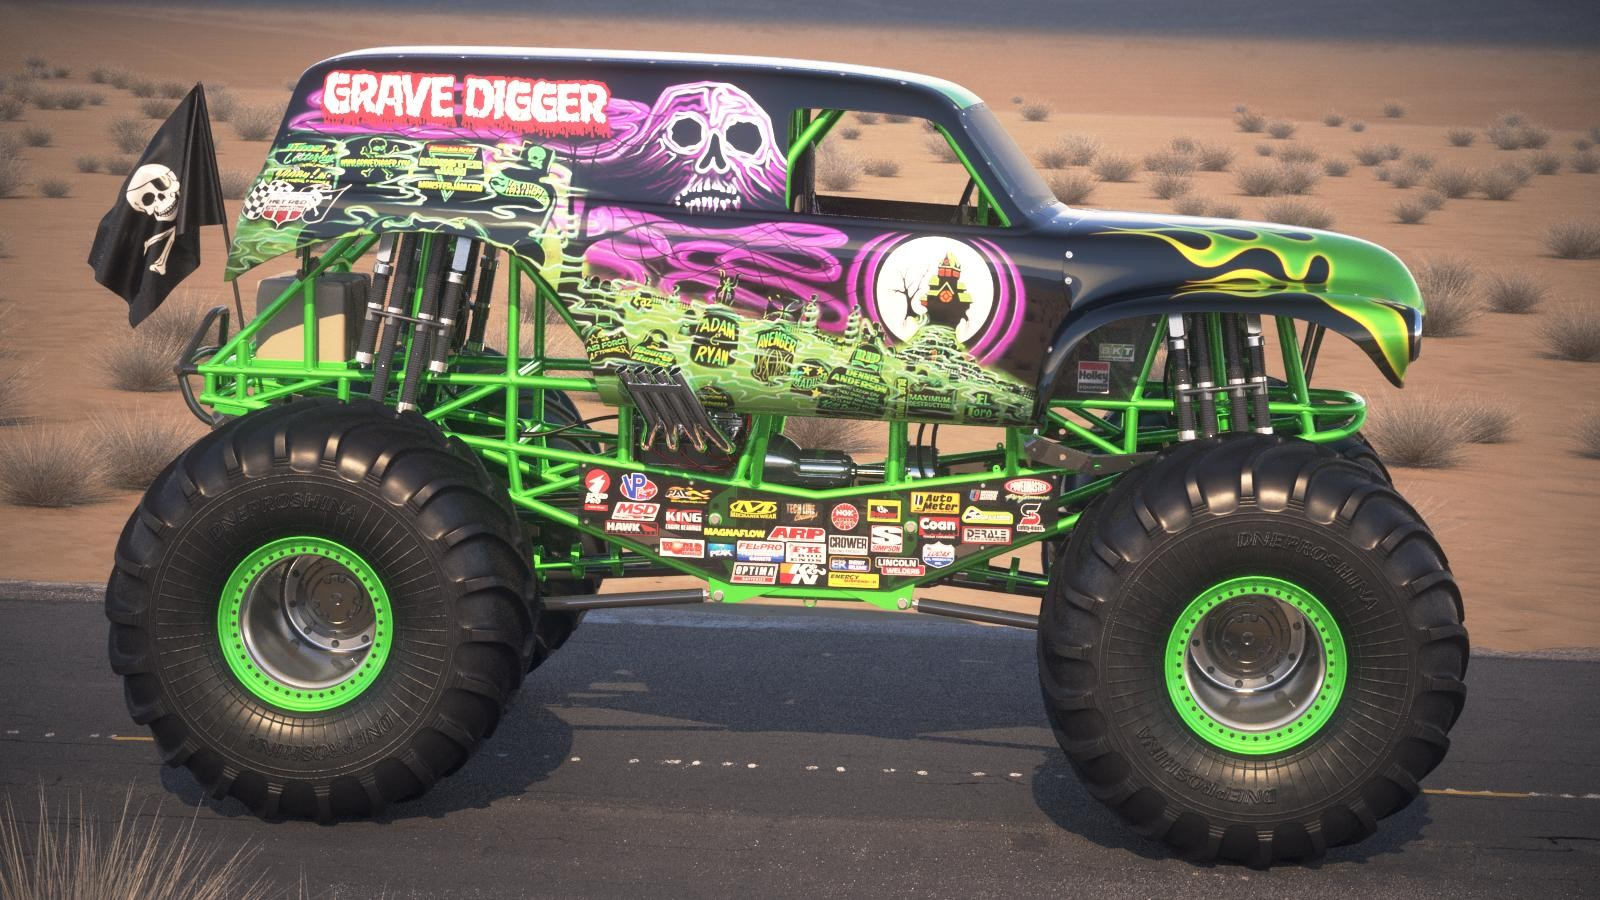 rcx cars with Monster Trucks Passion For Off Road Adventure on 33066 New Effects Of The Explosion And Fire as well Build R2 D2 besides 1102611 vw Previews Sub pact Crossover With T Cross Breeze Convertible Concept moreover Plans For My New Rc Build 58492 Tamiya Ta06 Pro together with Audi Rs8.